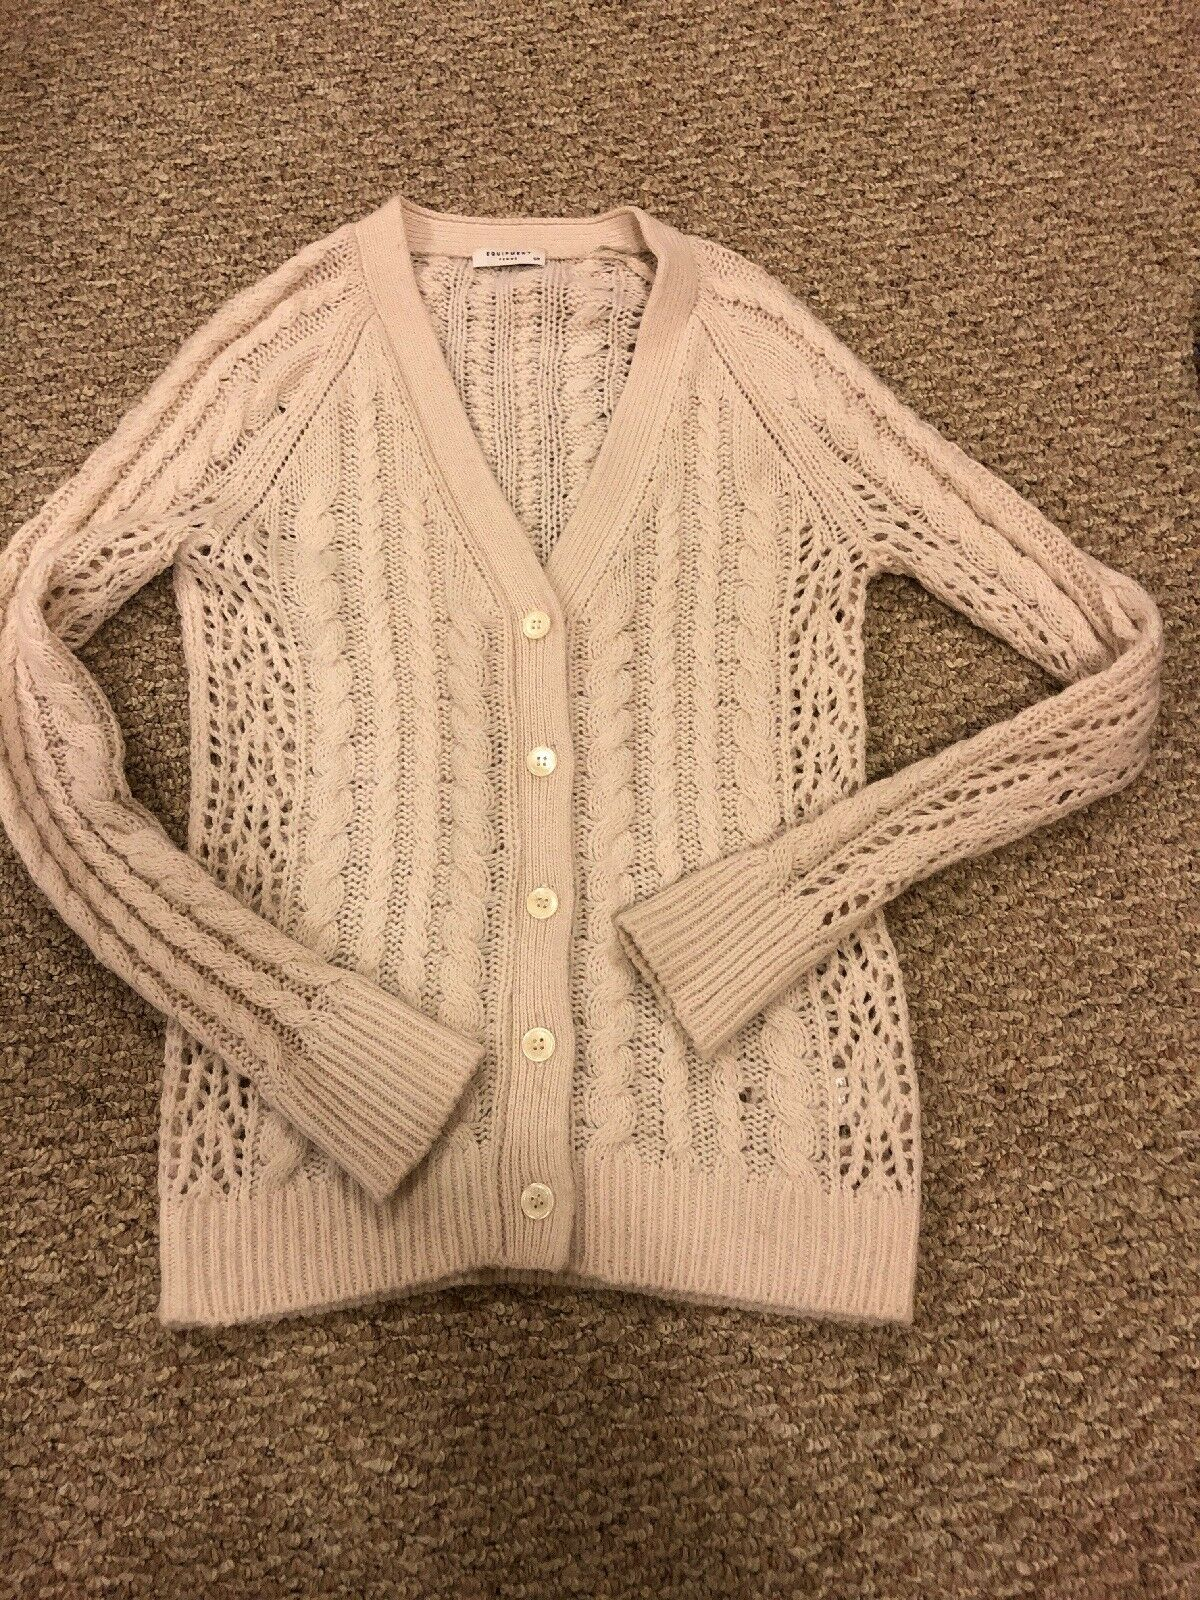 Equipment Femme Suzy Ivory White ButtonDown Cable Knit Wool Cashmere Cardigan S